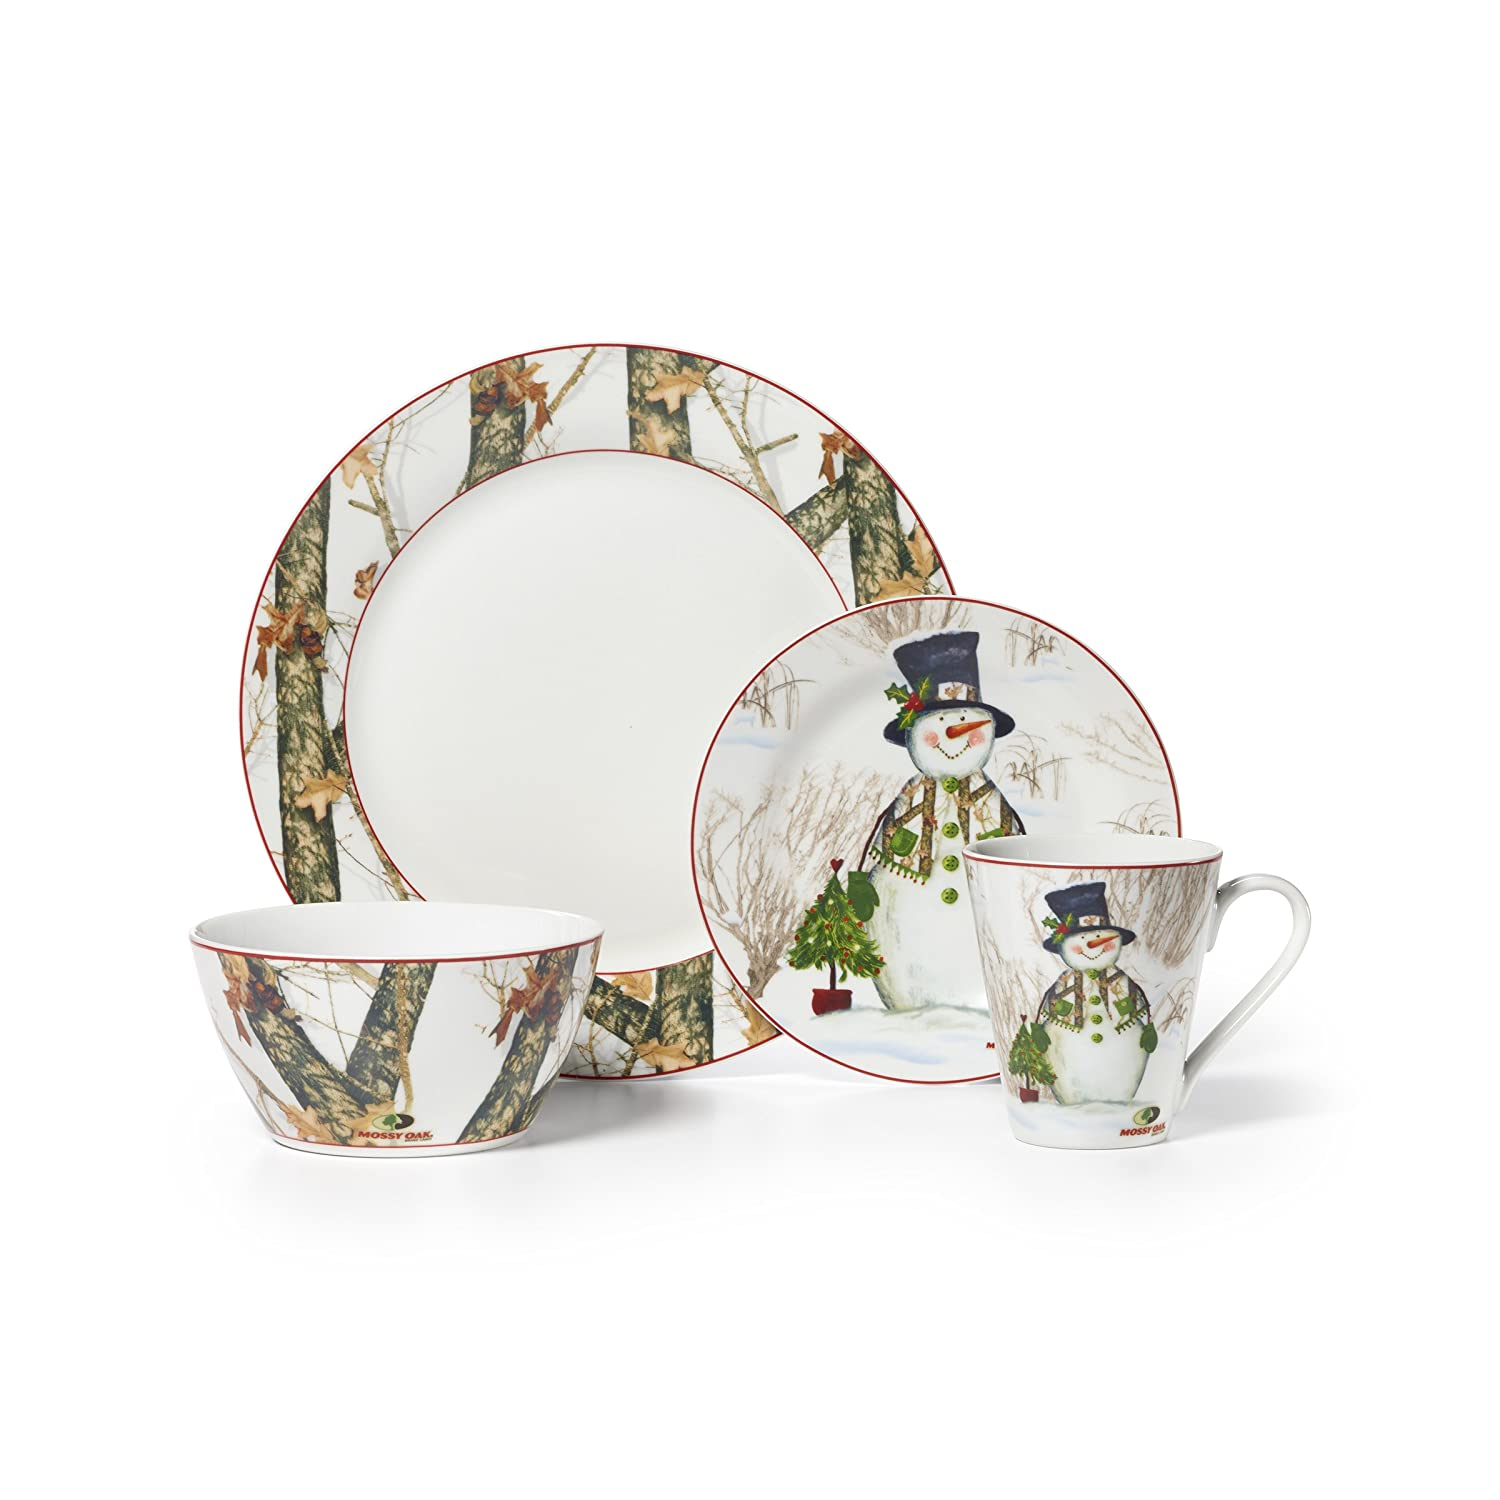 Snowman Dinnerware Sets